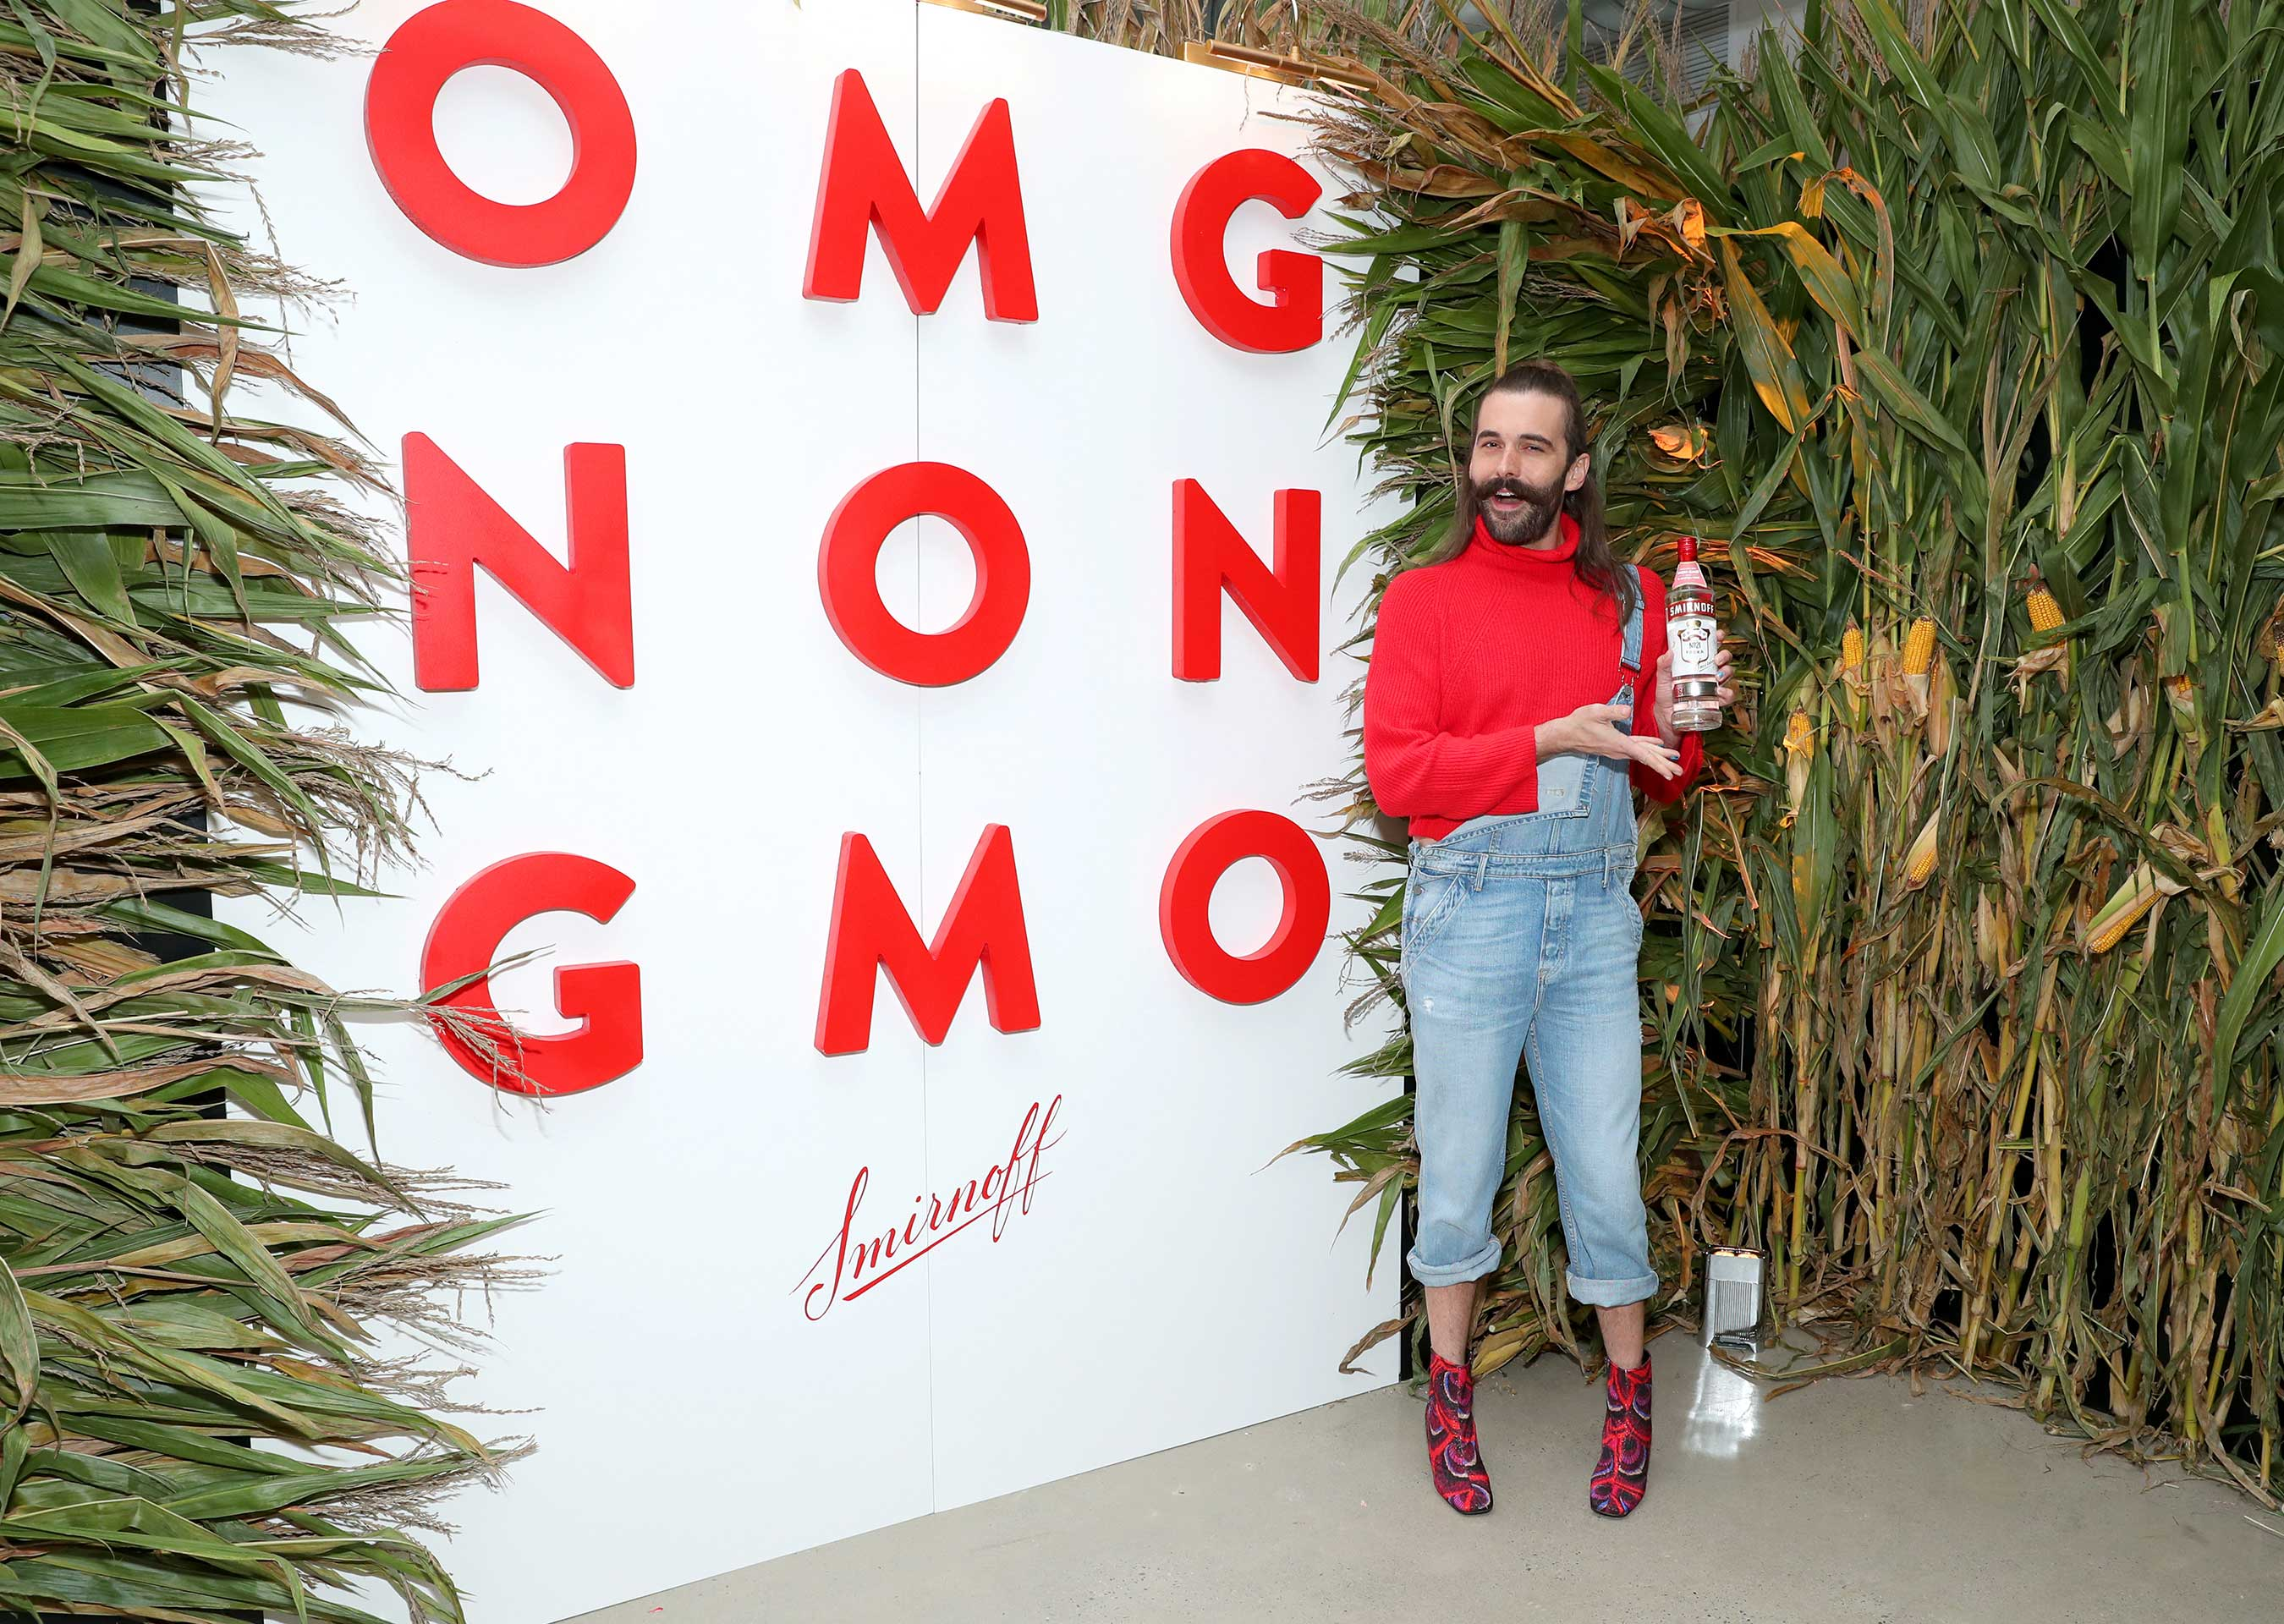 OMG! Jonathan Van Ness celebrates Smirnoff No. 21 Vodka, now made with non-GMO corn. (Photo by Cindy Ord/Getty Images for Smirnoff)